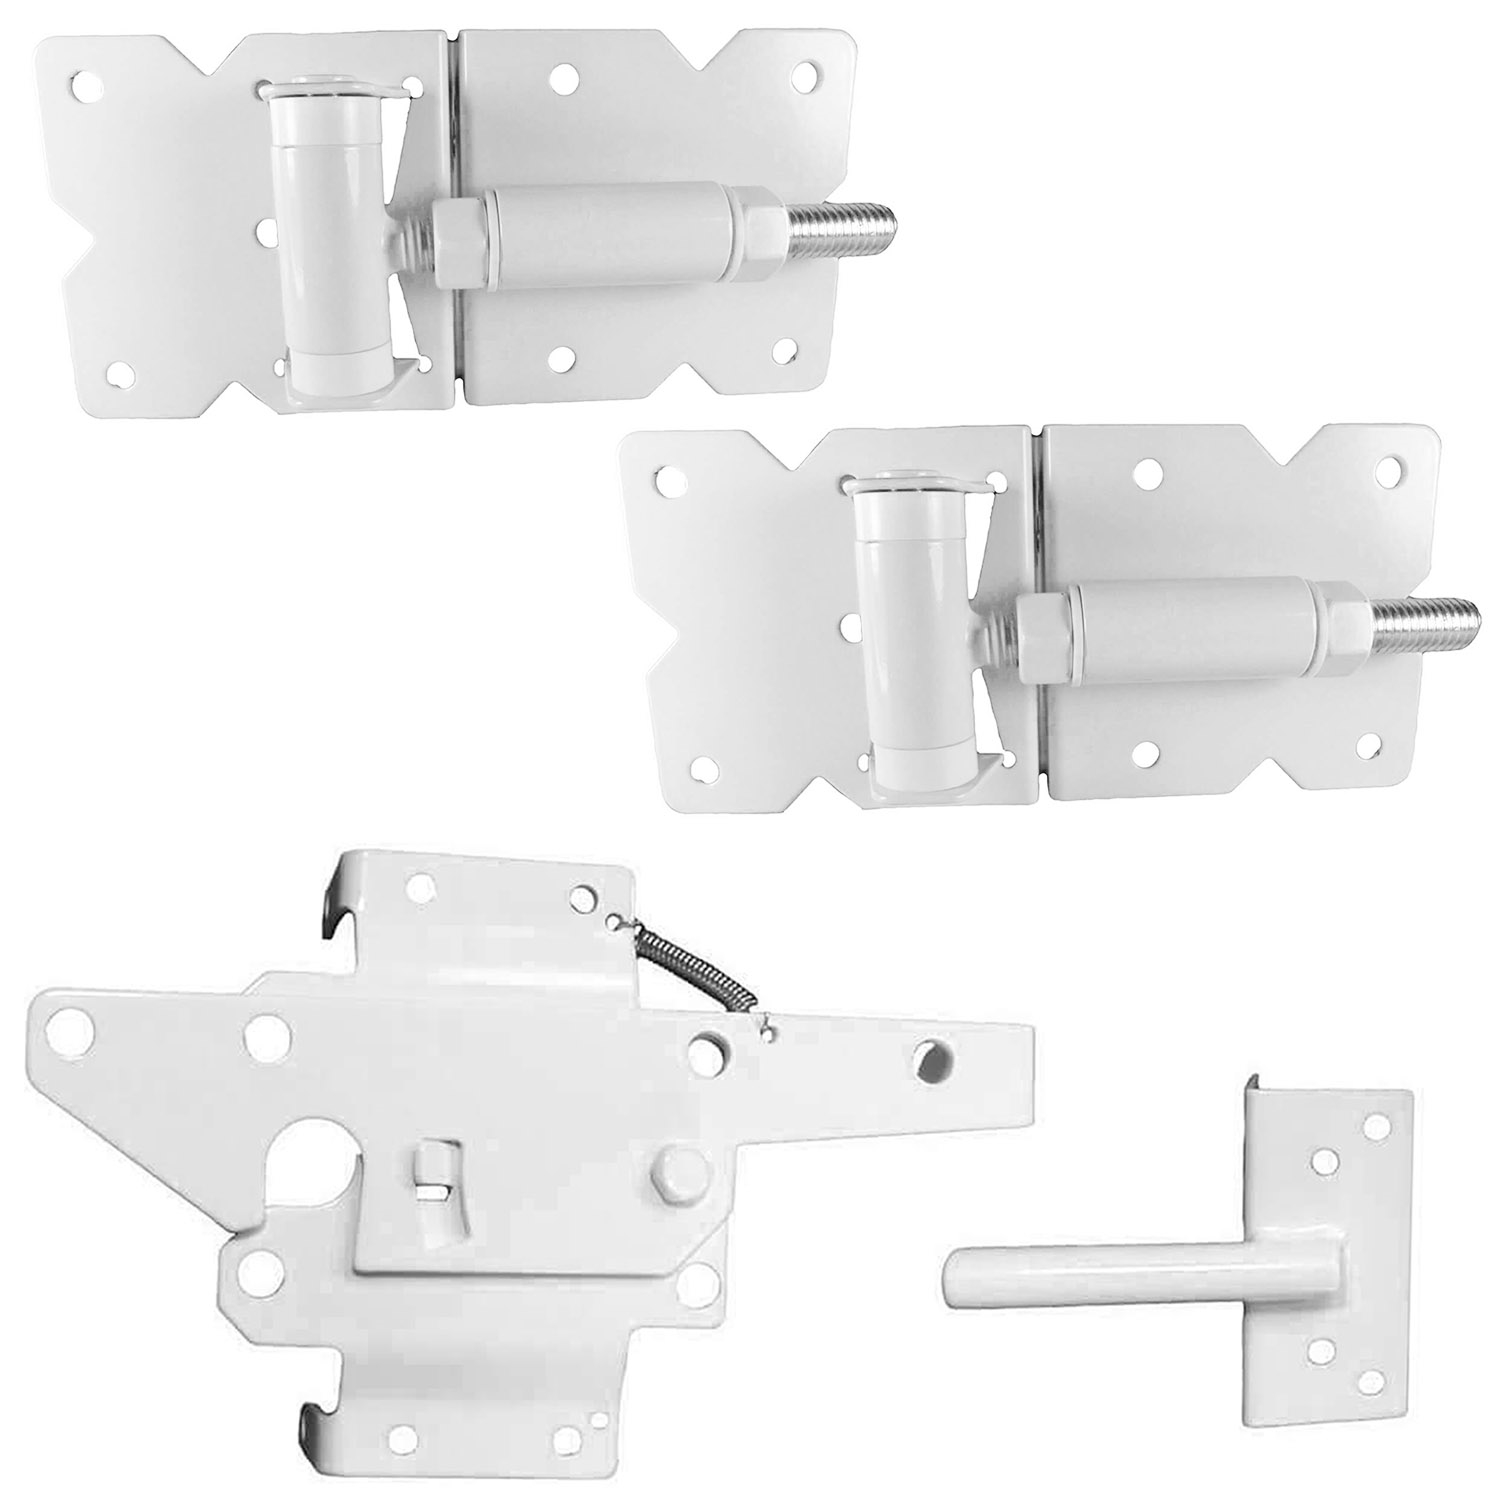 vinyl fence gate hardware plastic fence self closing vinyl fence gate single hardware kit black for vinyl pvc etc fencing has hinges and latch